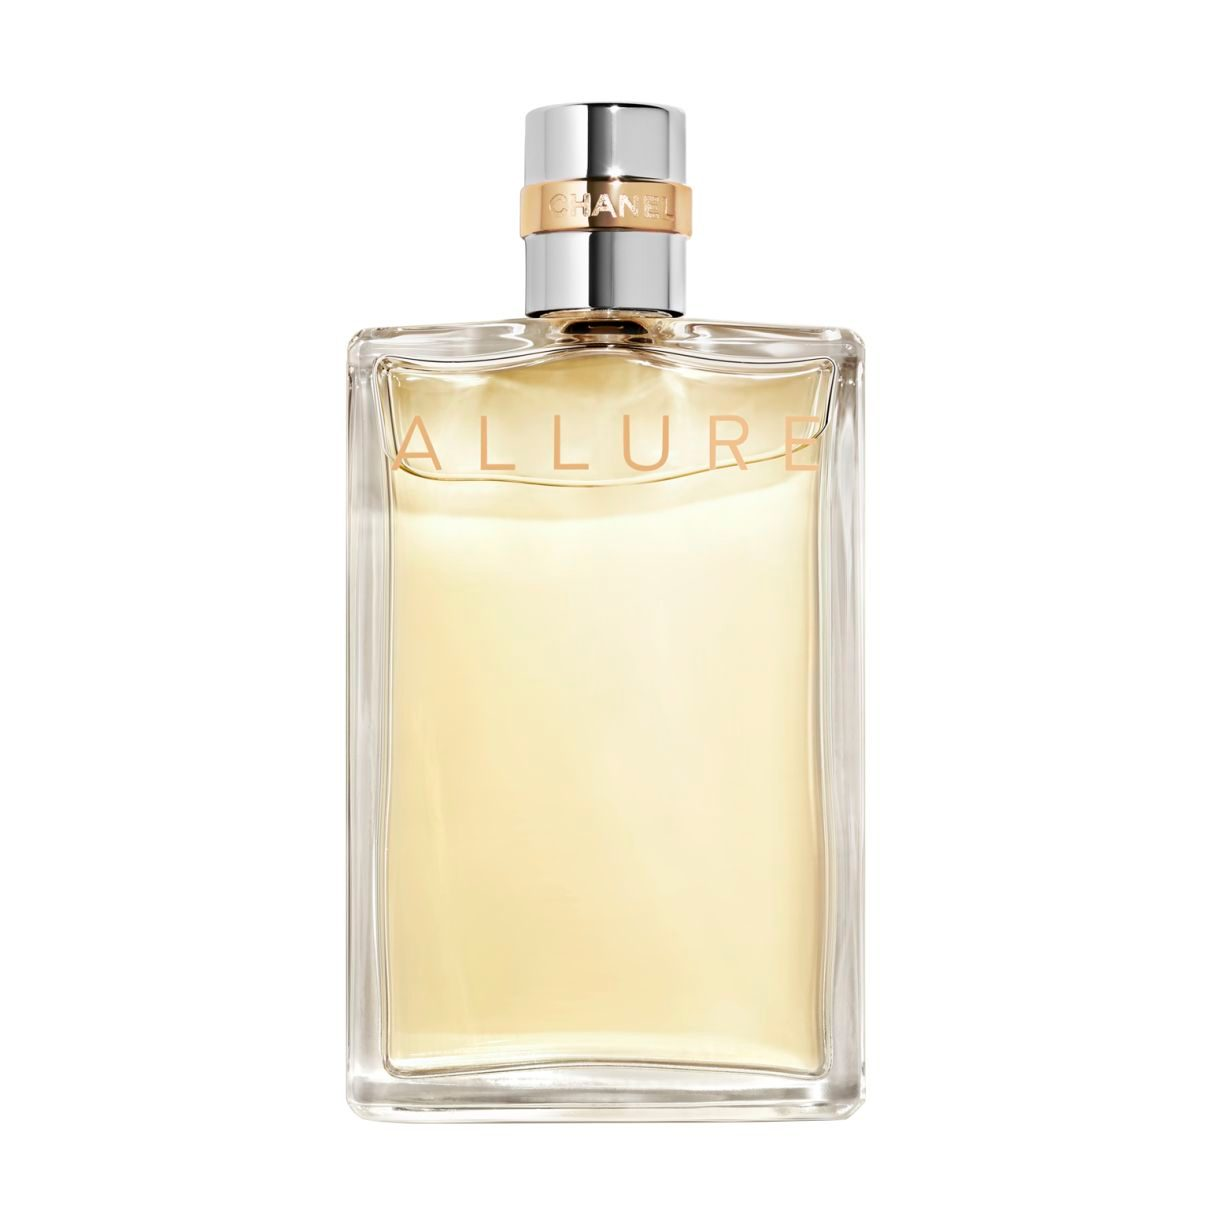 ALLURE EAU DE TOILETTE SPRAY